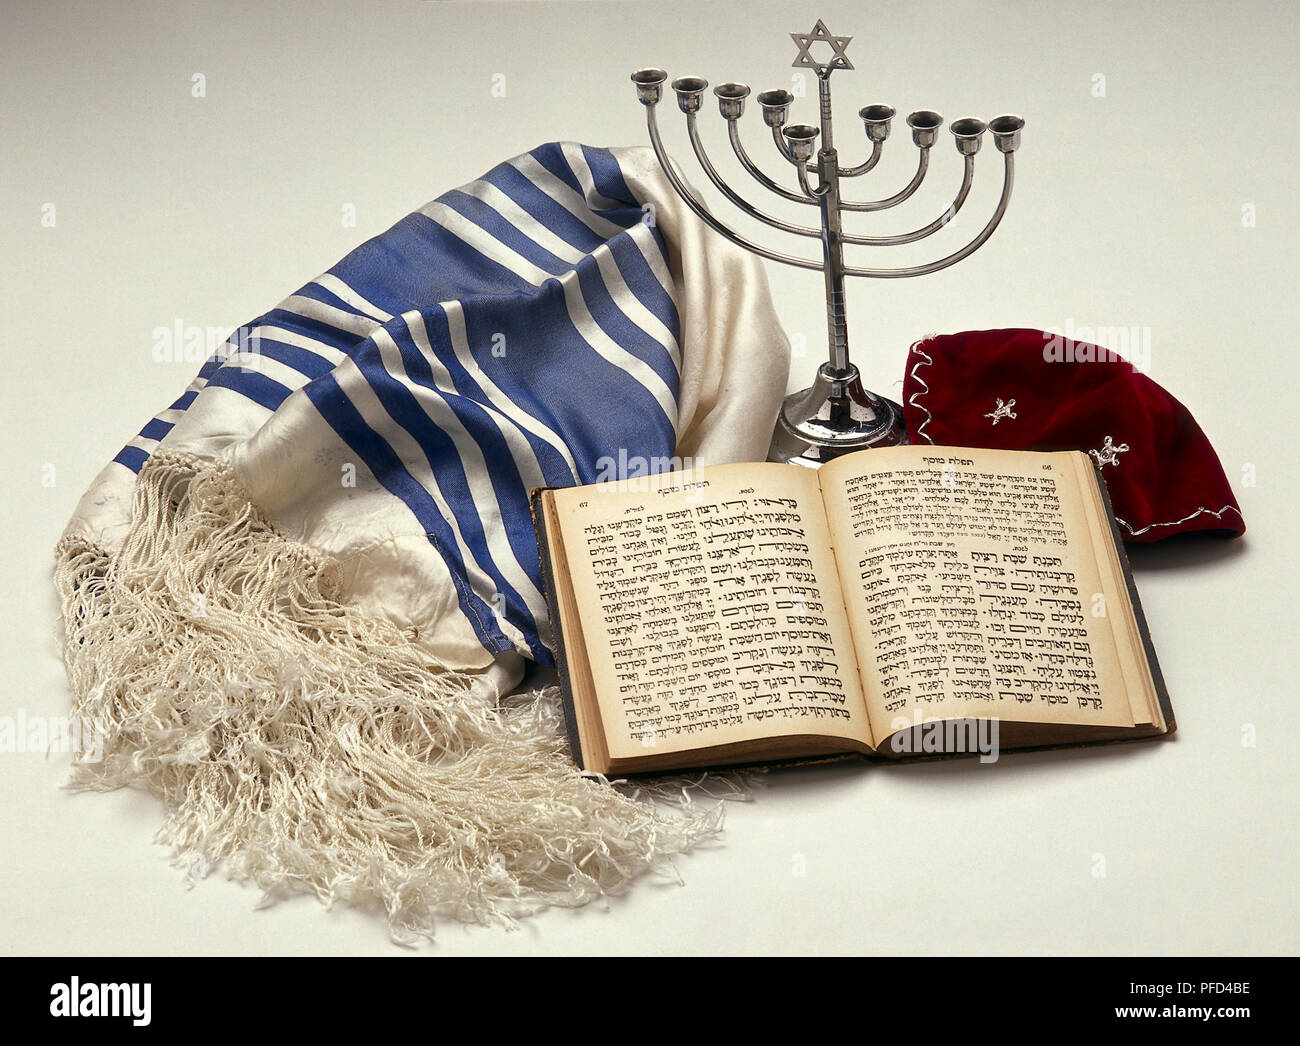 Menorah or branched candlestick, yarmulke or kipa, Jewish prayer book, and tallith or prayer shawl. - Stock Image